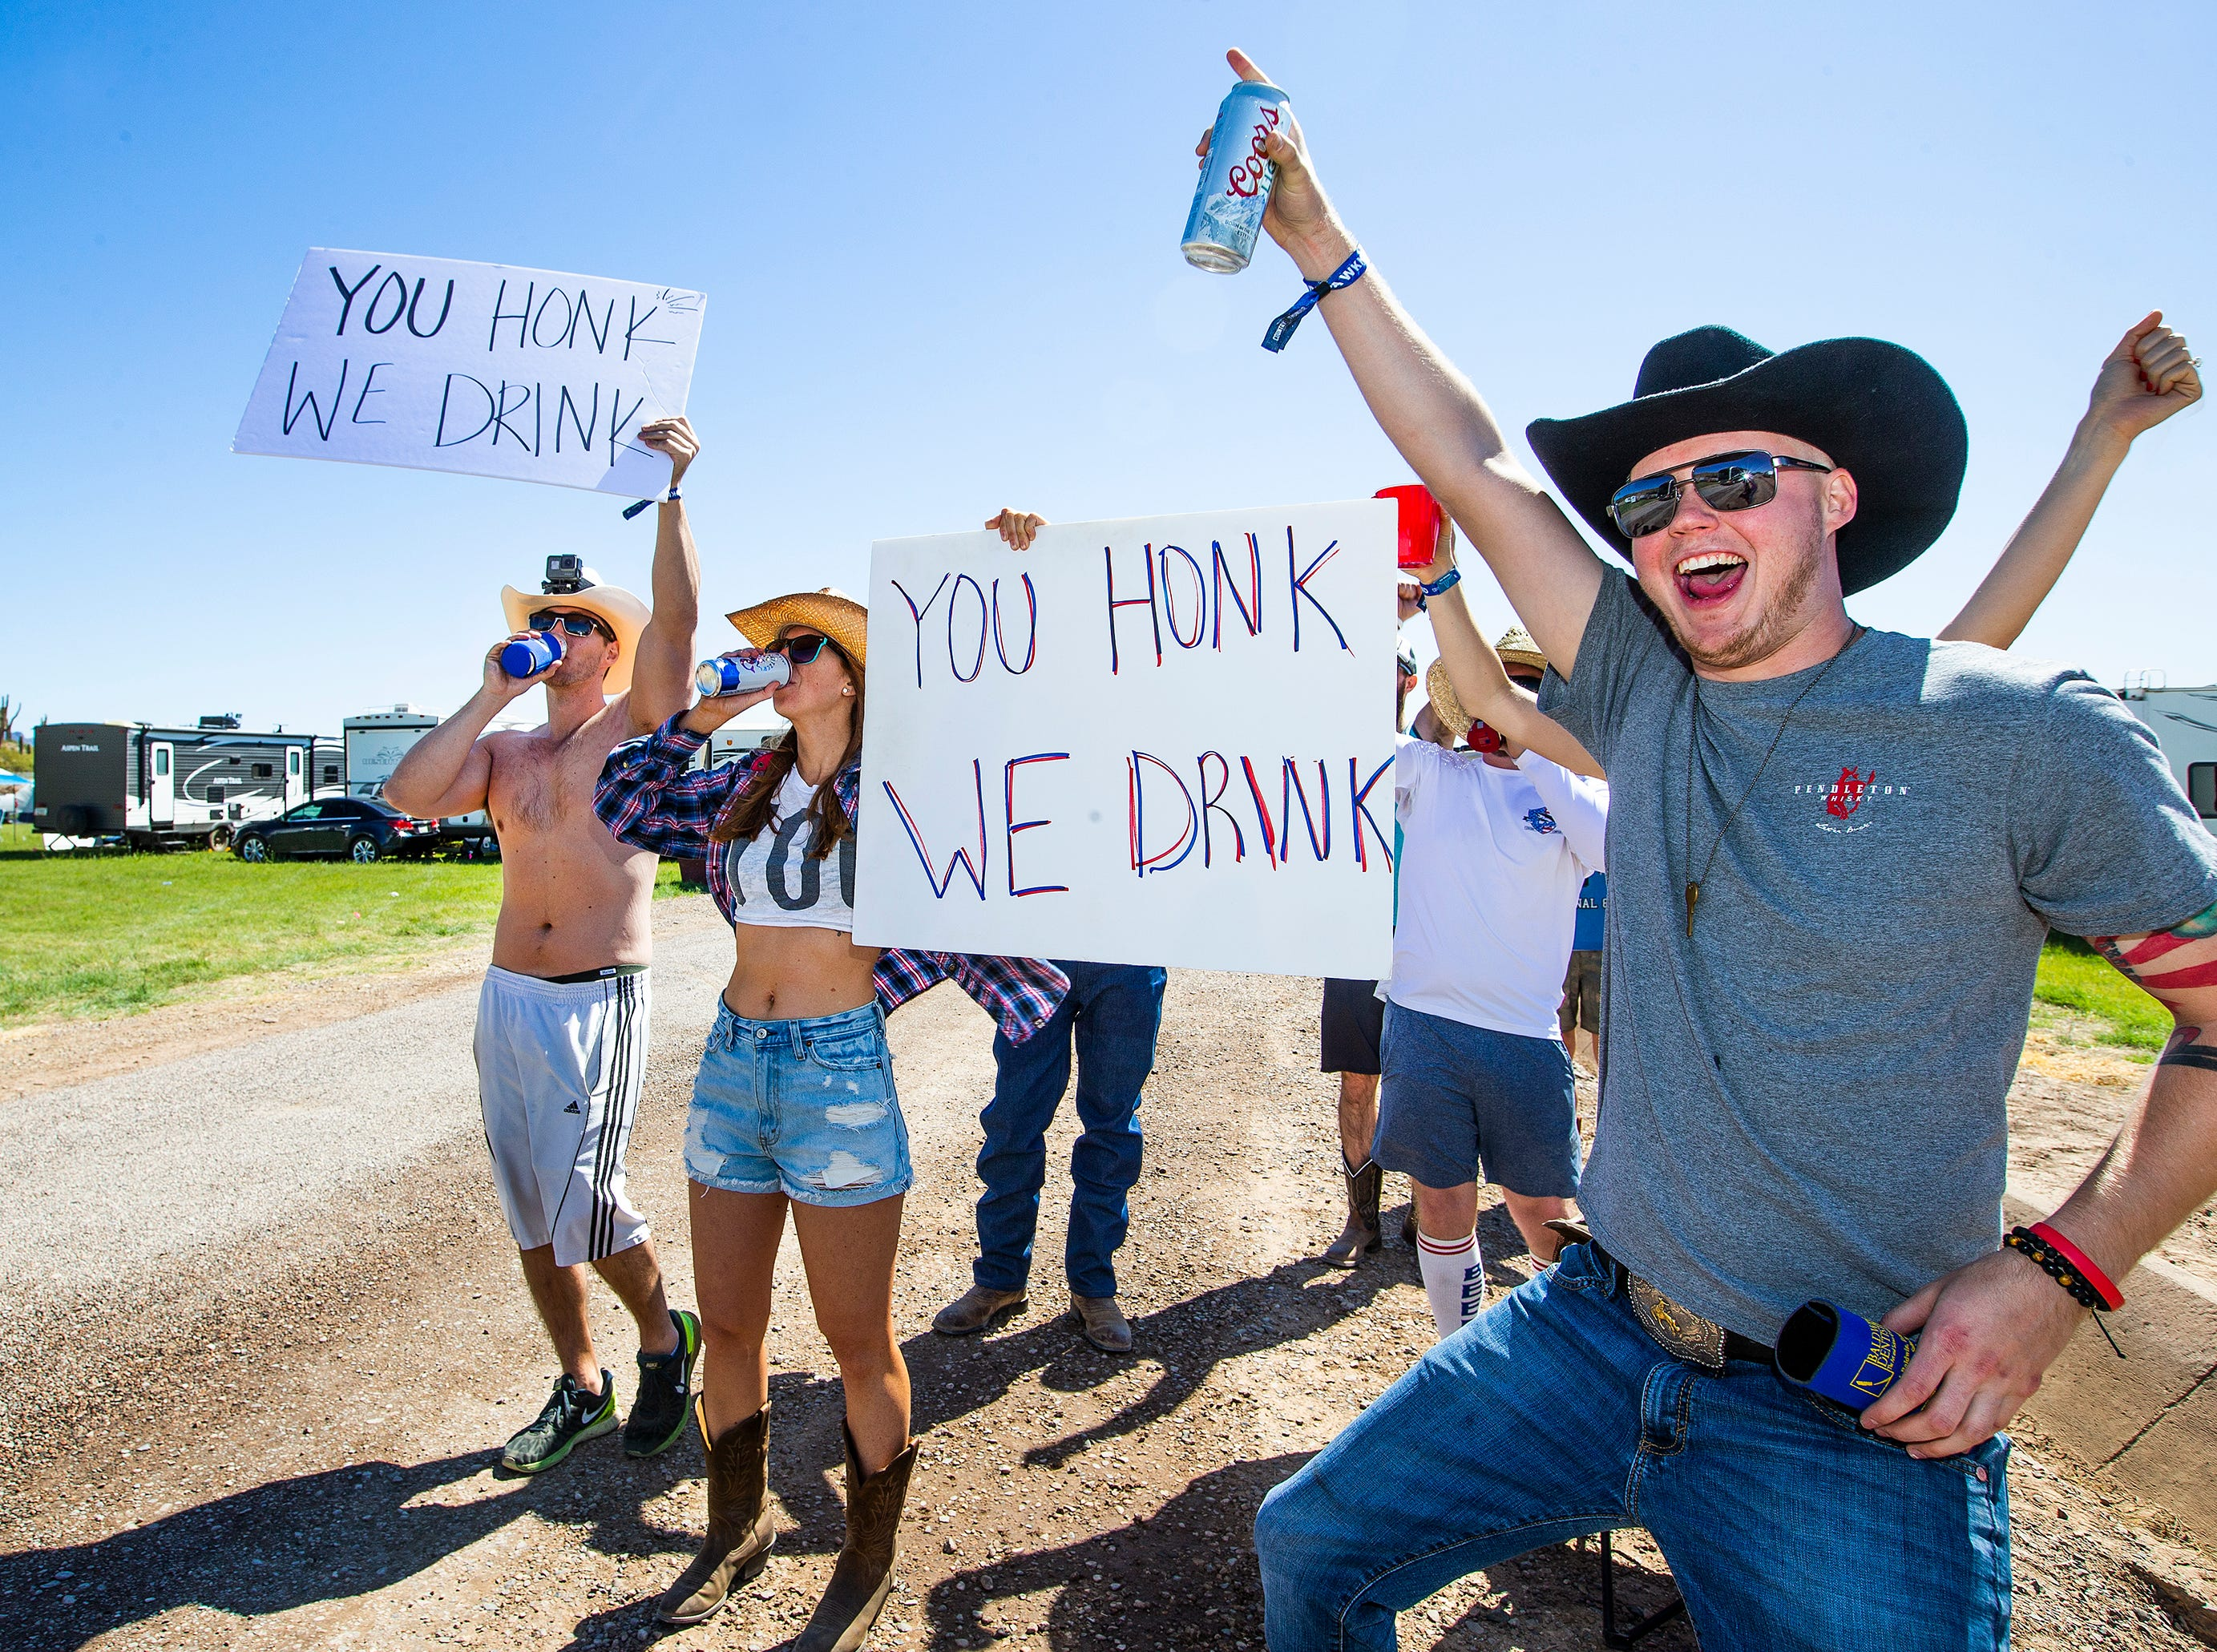 Early-morning risers get the party started by getting people to honk as they enter the Country Thunder Arizona 2019 music festival April 11, 2019.